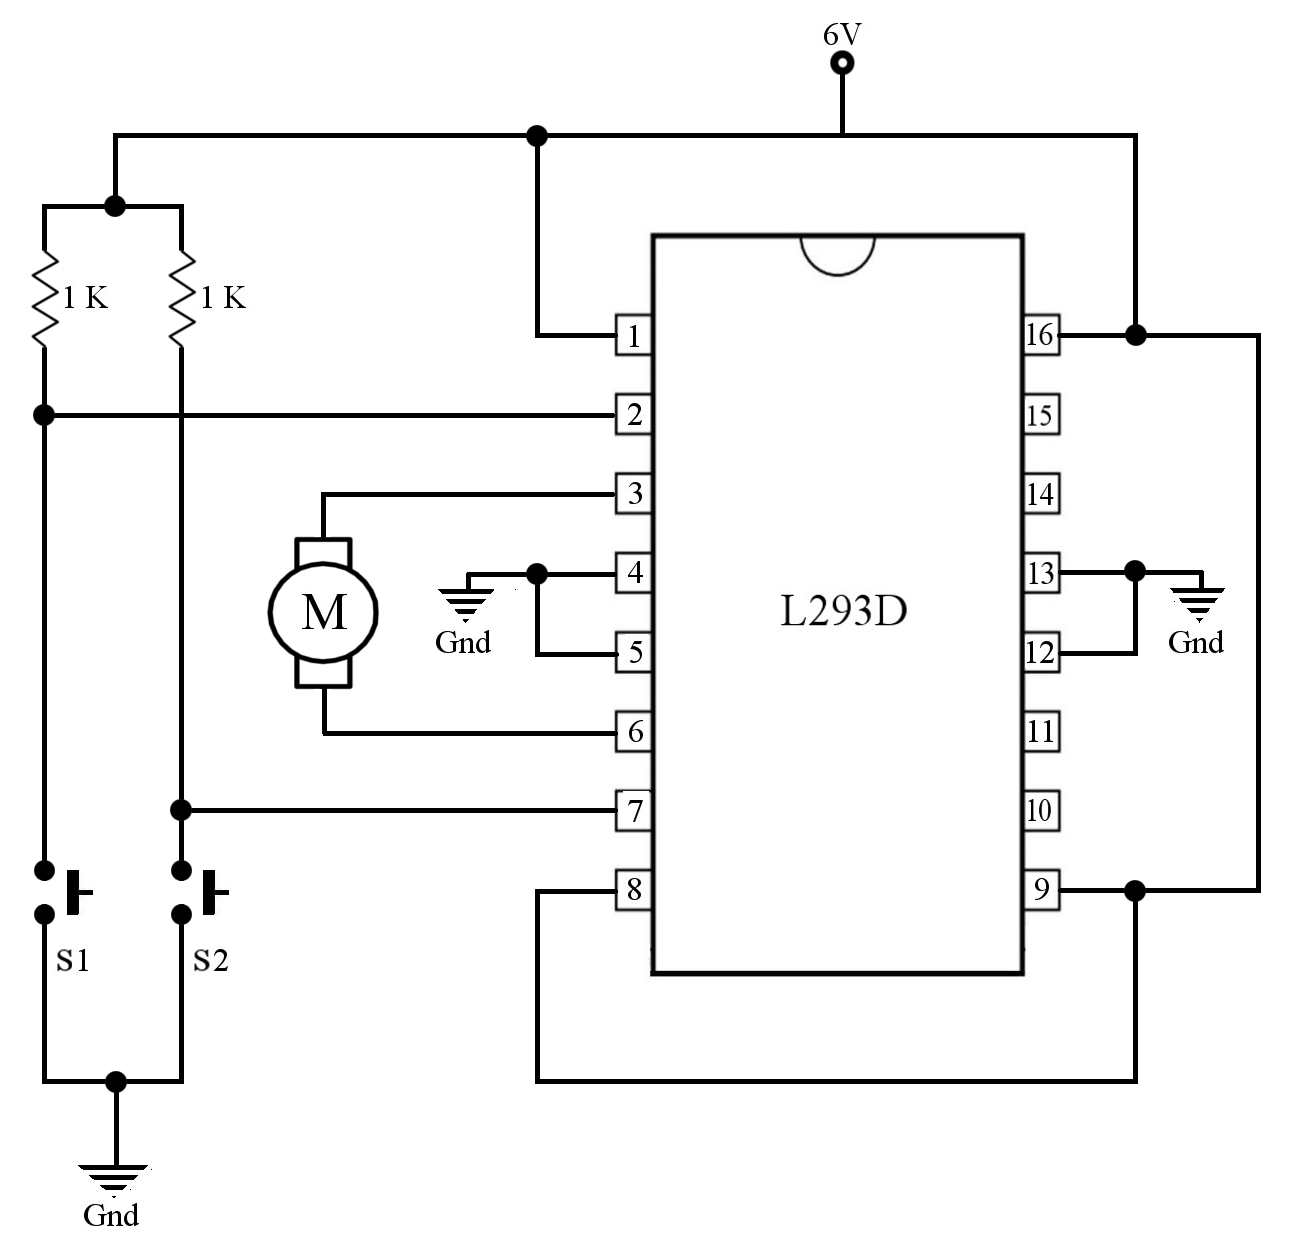 control the direction of rotation of a 6v dc motor using l293d and control the direction of rotation of a 6v dc motor using l293d and press button switches